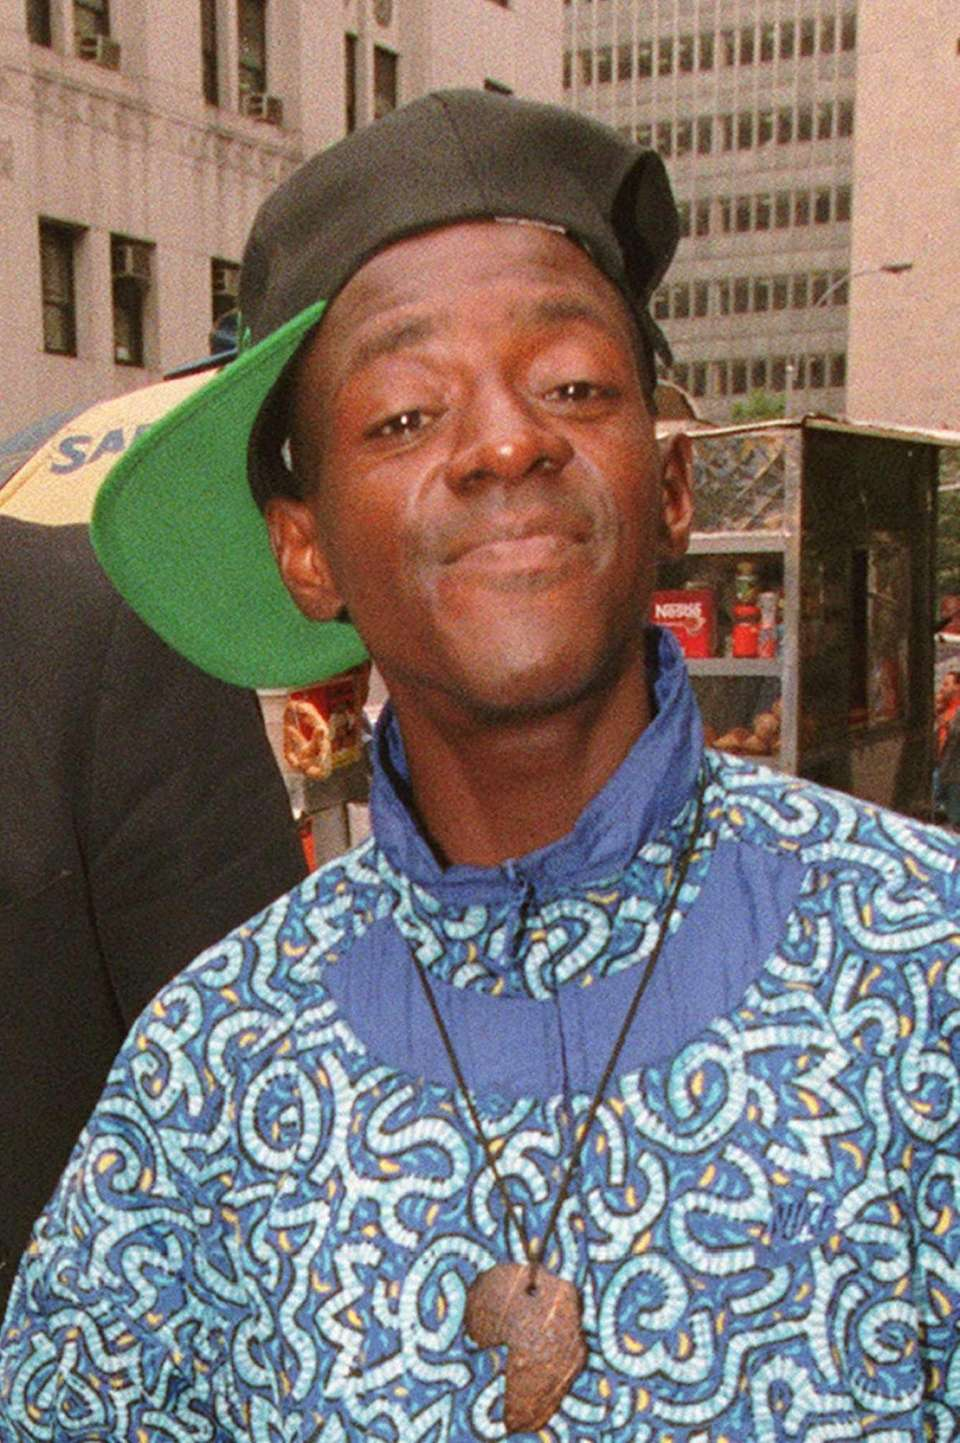 Rapper Flavor Flav, AKA William Drayton, is photographed